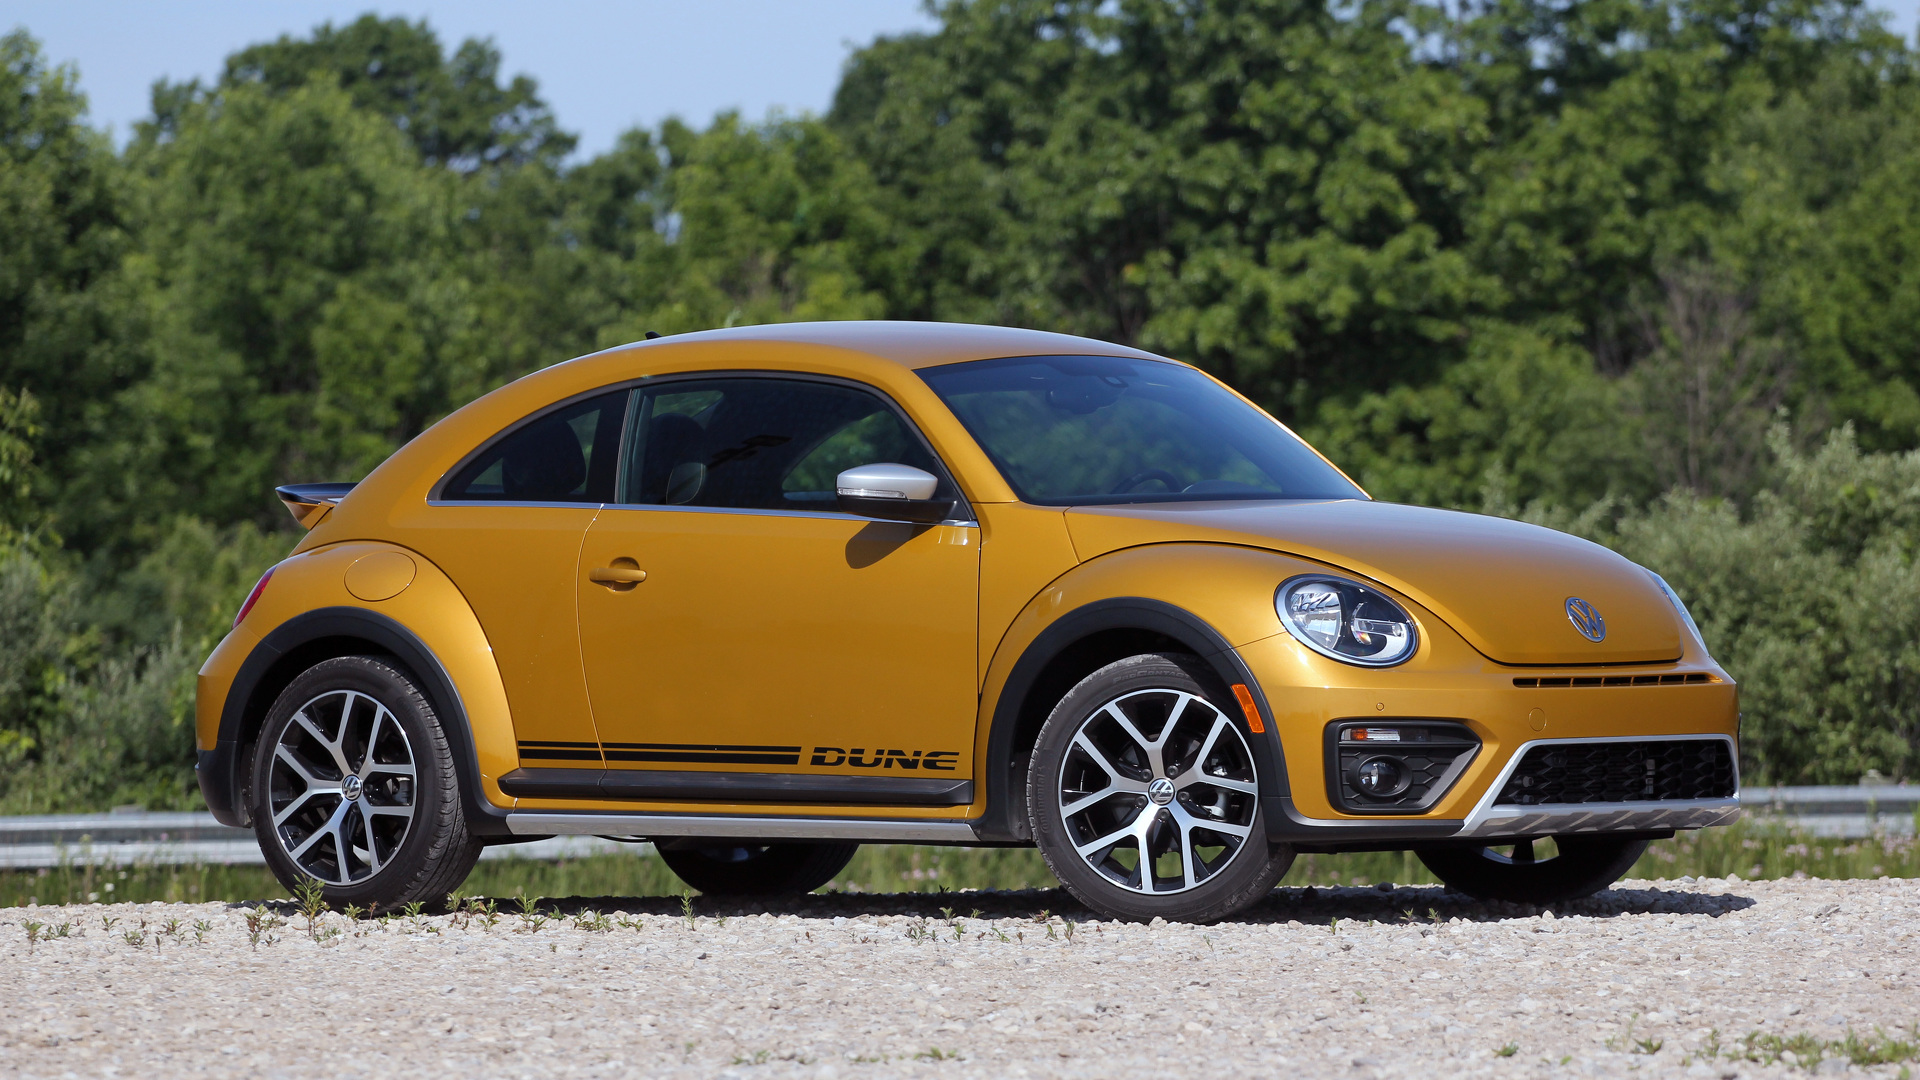 2020 Volkswagen Beetle Convertible Turbo Release Date Vw Engine